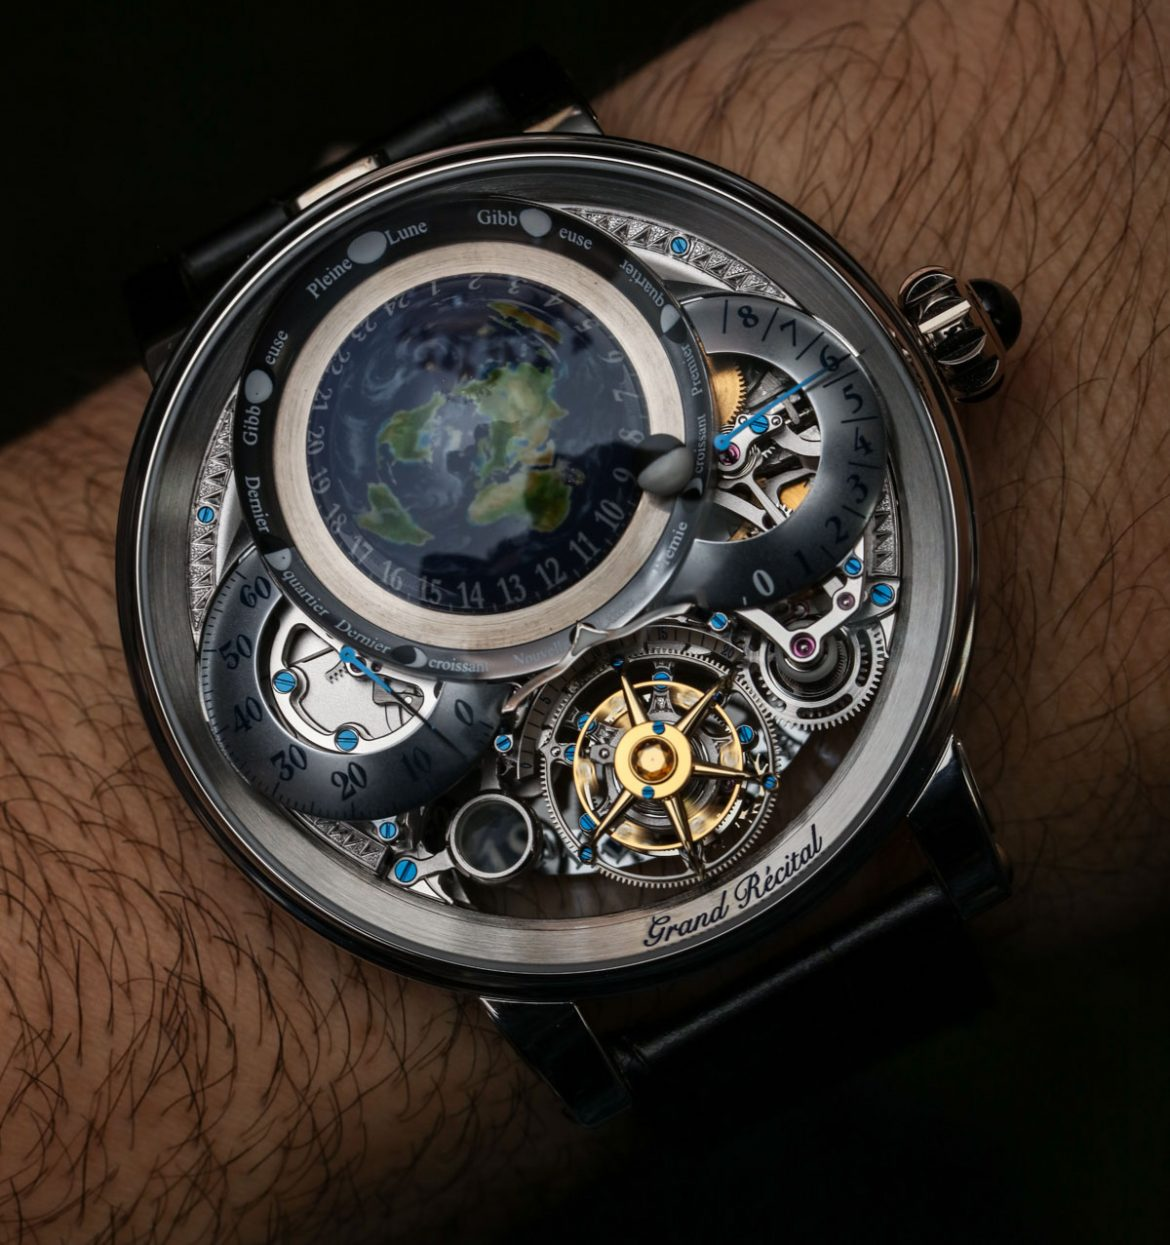 Bovet Récital 22 Grand Récital Watch Hands-On Hands-On